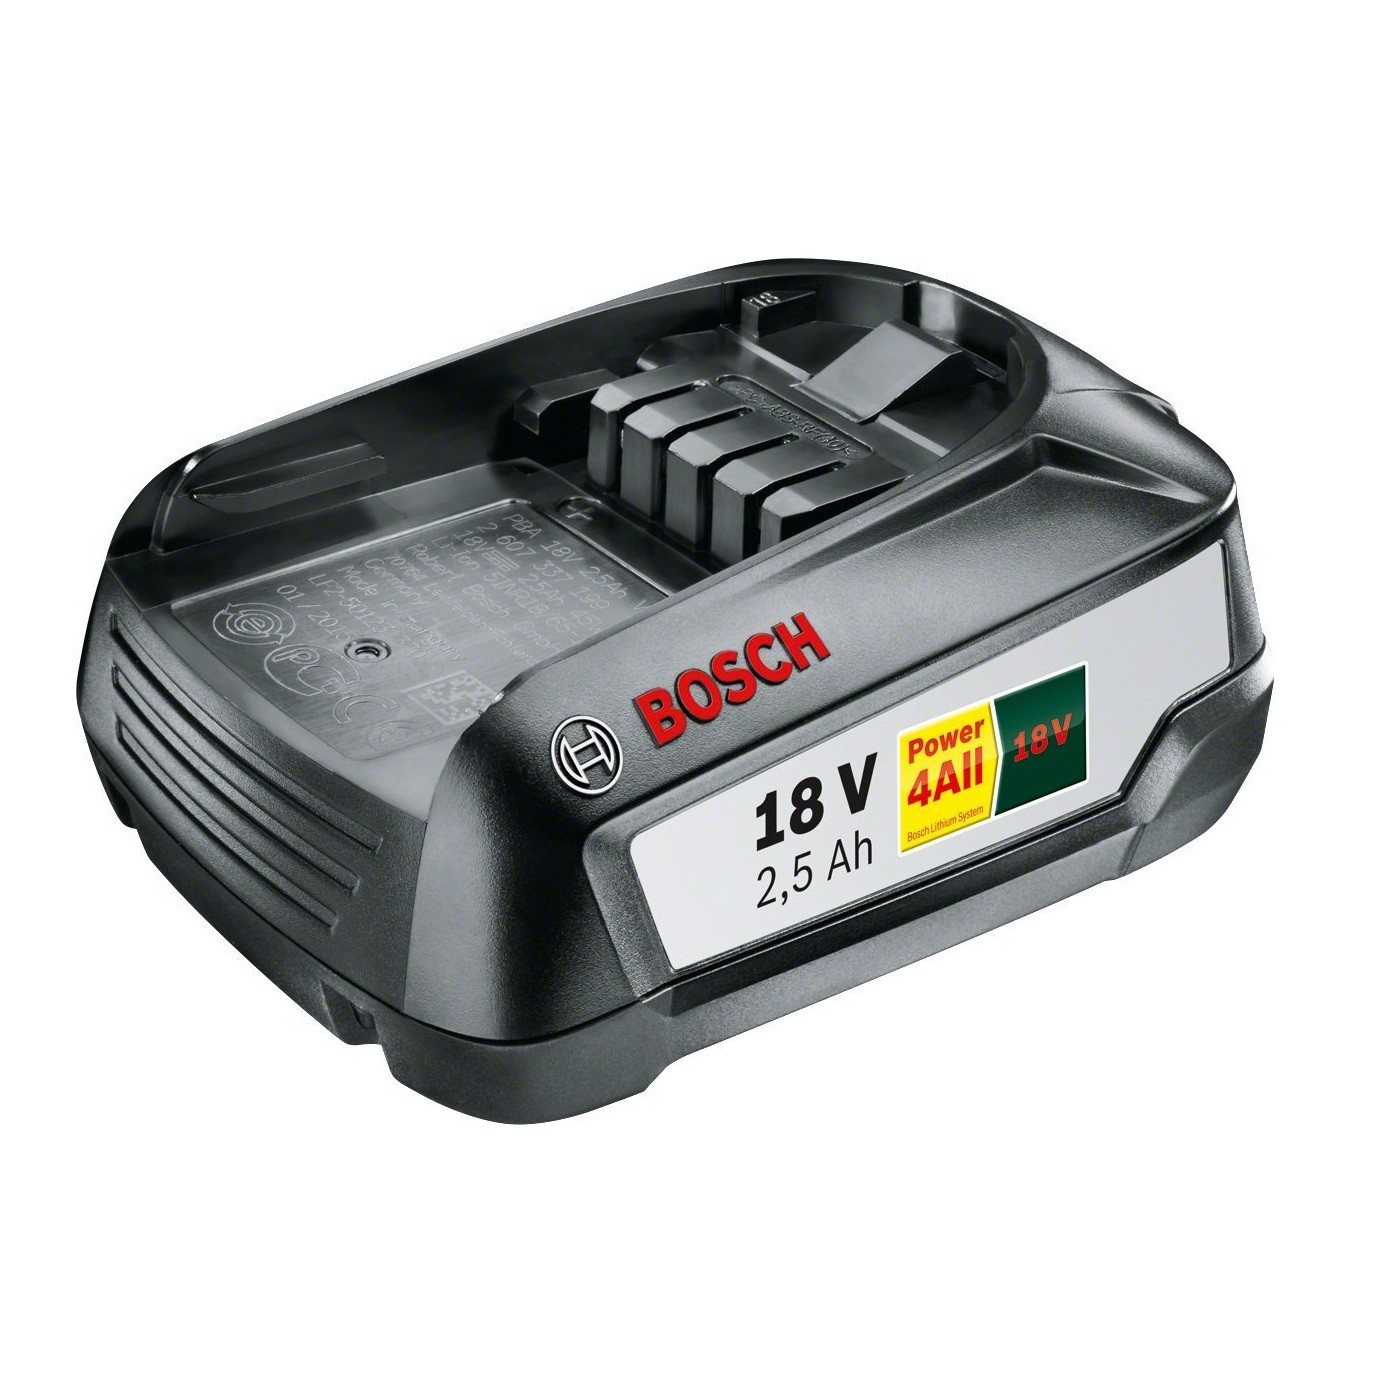 Bosch Green 18v 2 5ah Lithium Ion Battery Power4all